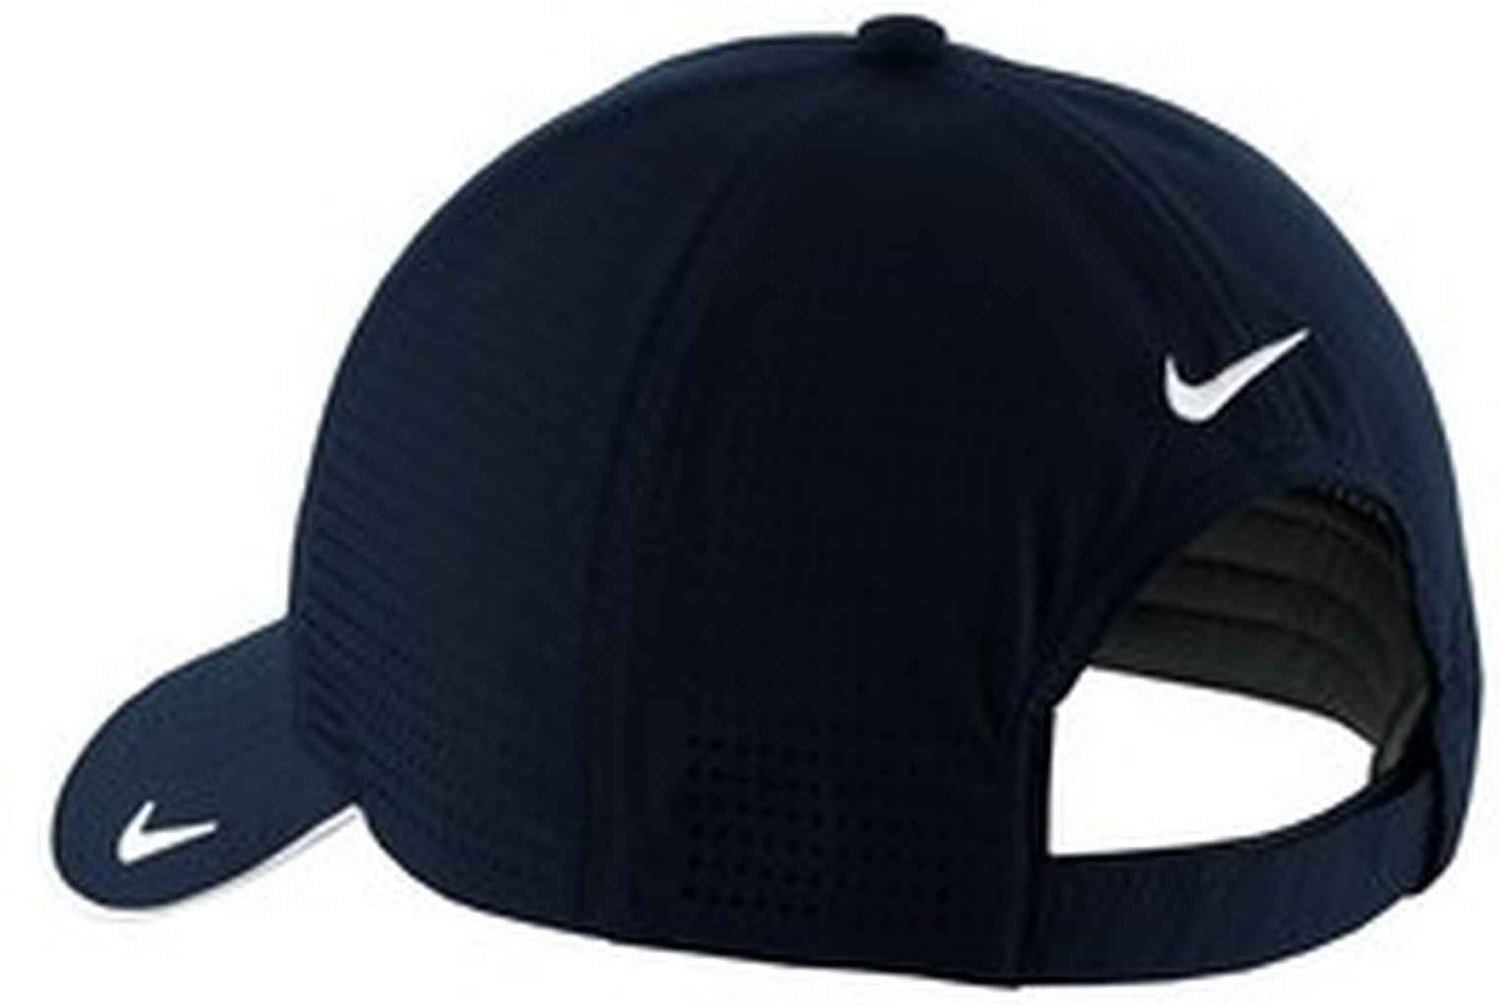 7460b205853 Get Quotations · Nike Golf - Dri-FIT Swoosh Perforated Cap